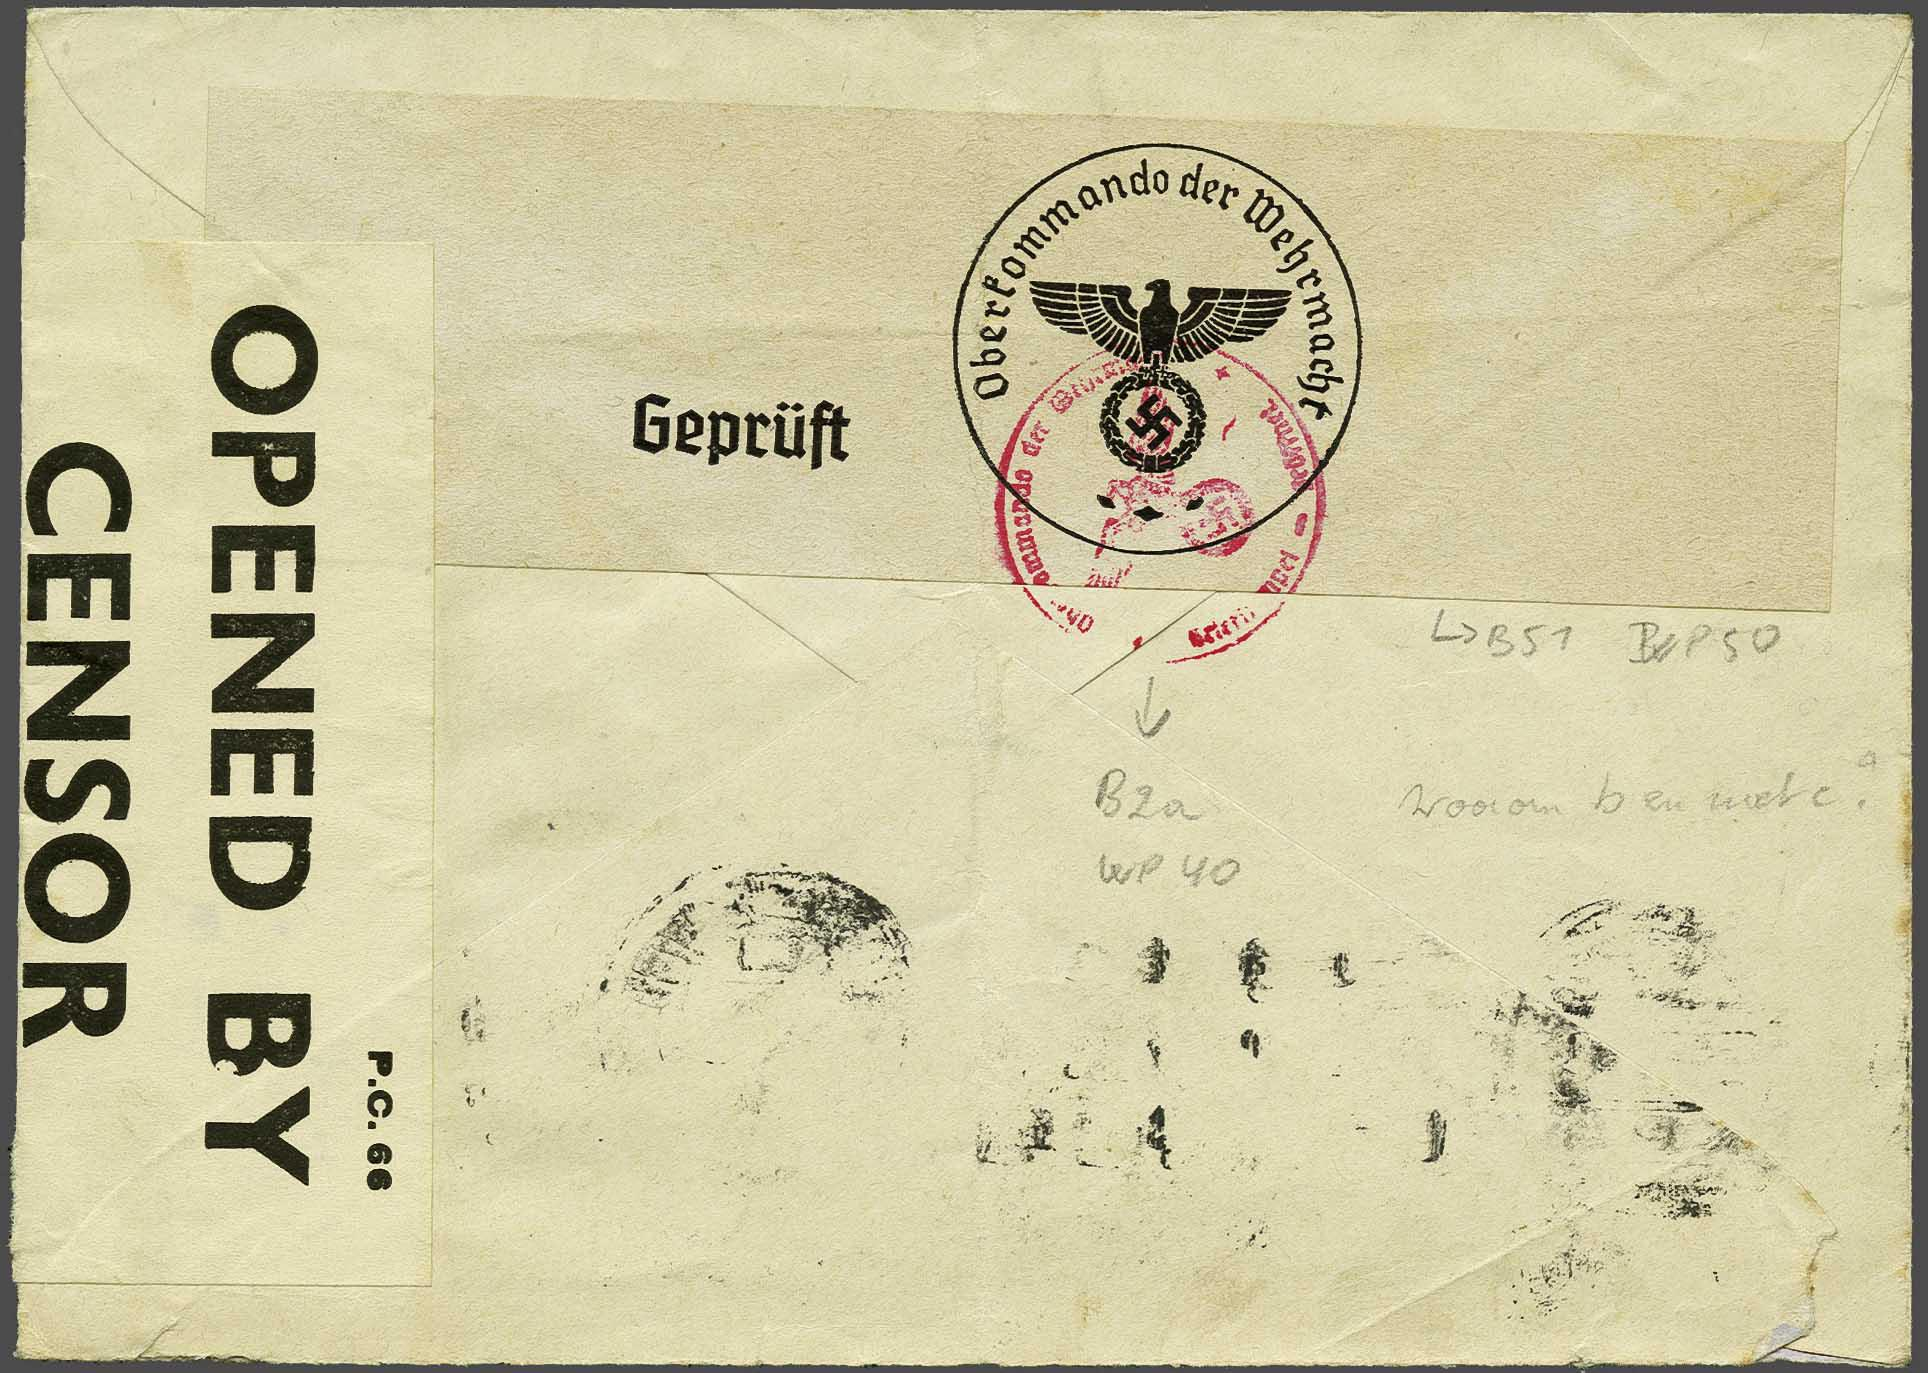 Lot 1007 - Topics and Miscellaneous world war II -  Corinphila veilingen Auction 235: Postal History WW2 - The Stefan Drukker Collection